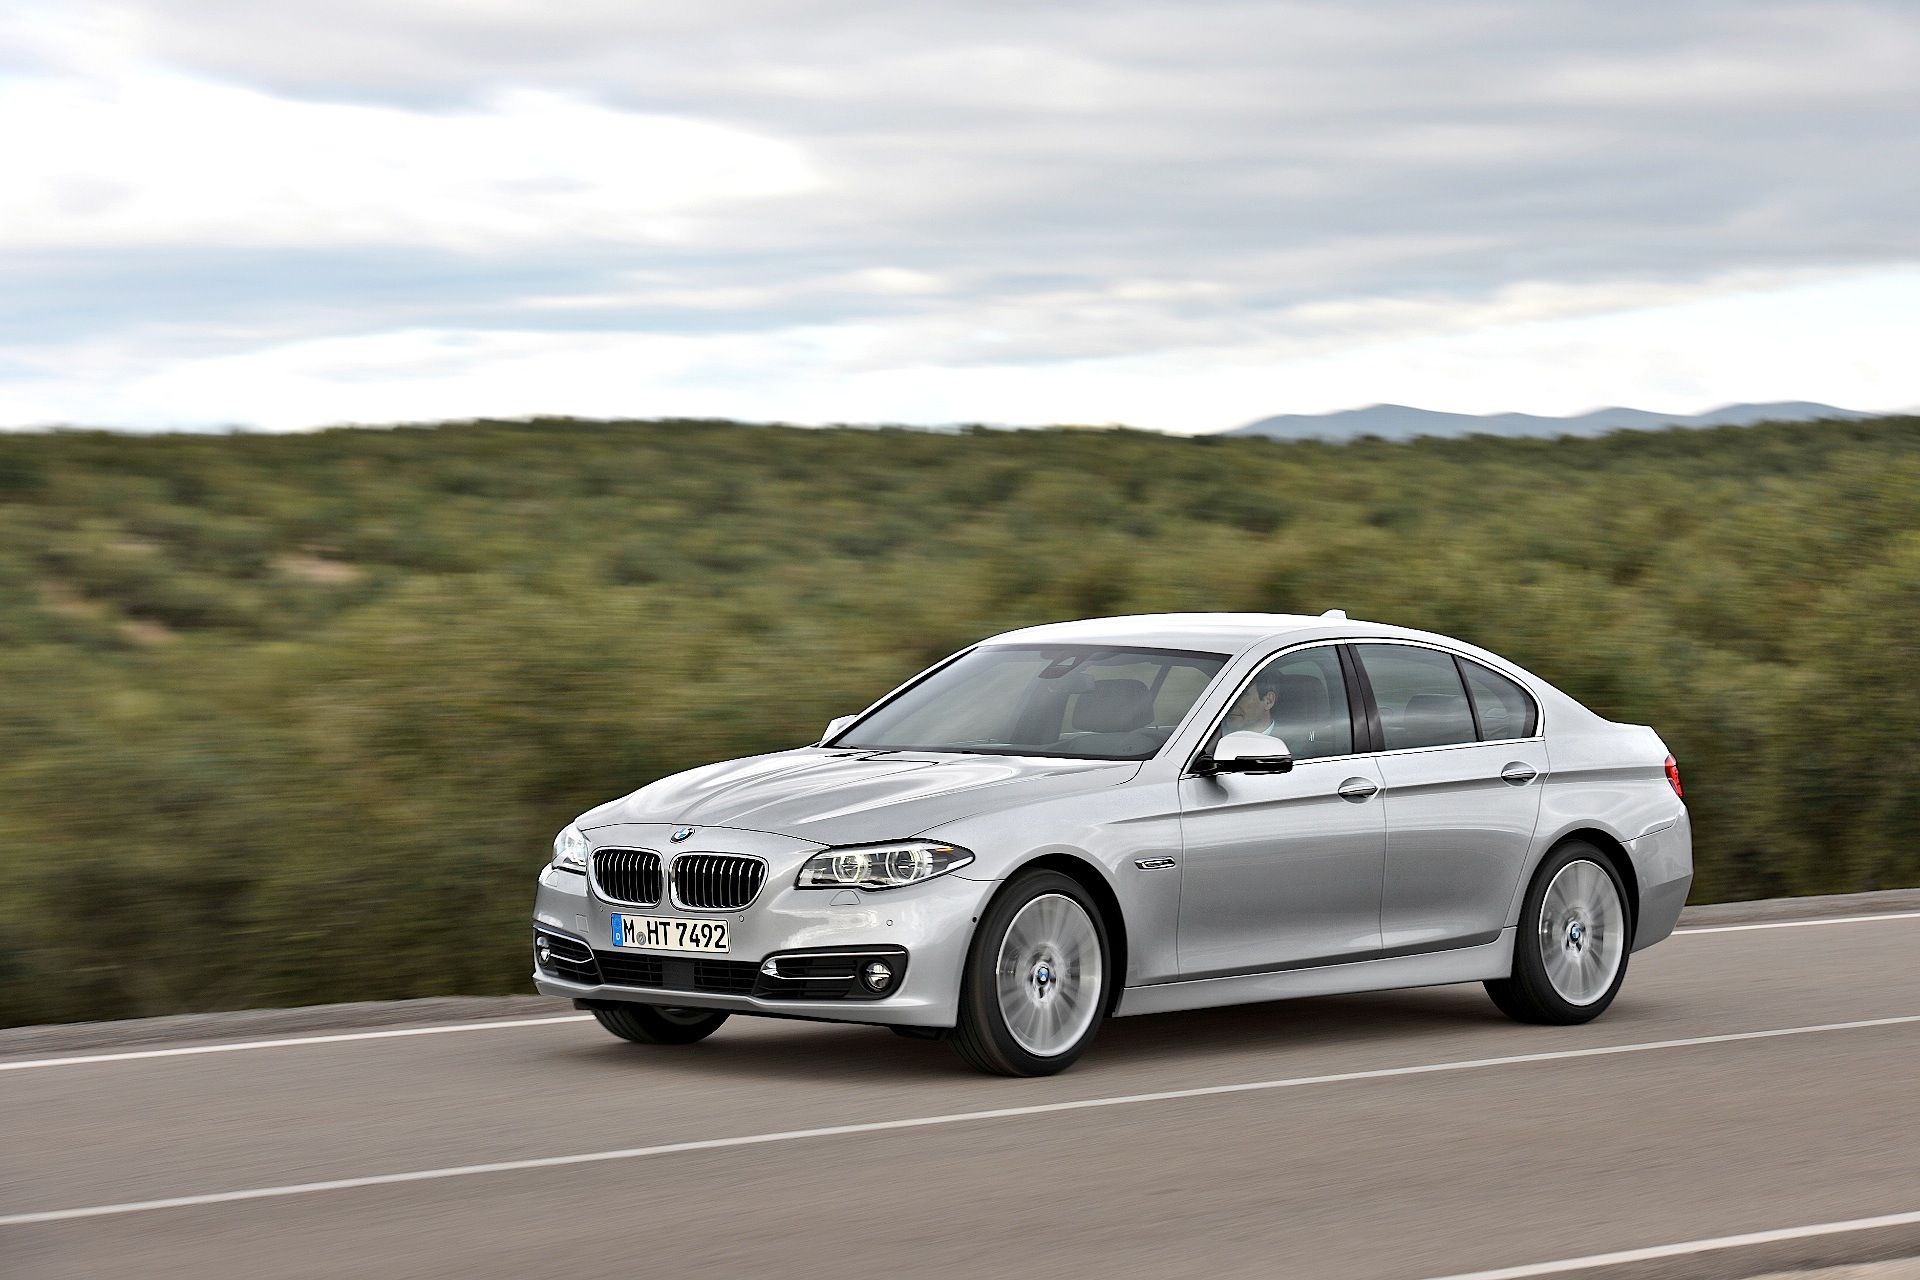 BMW 5 series 550i 2013 photo - 2